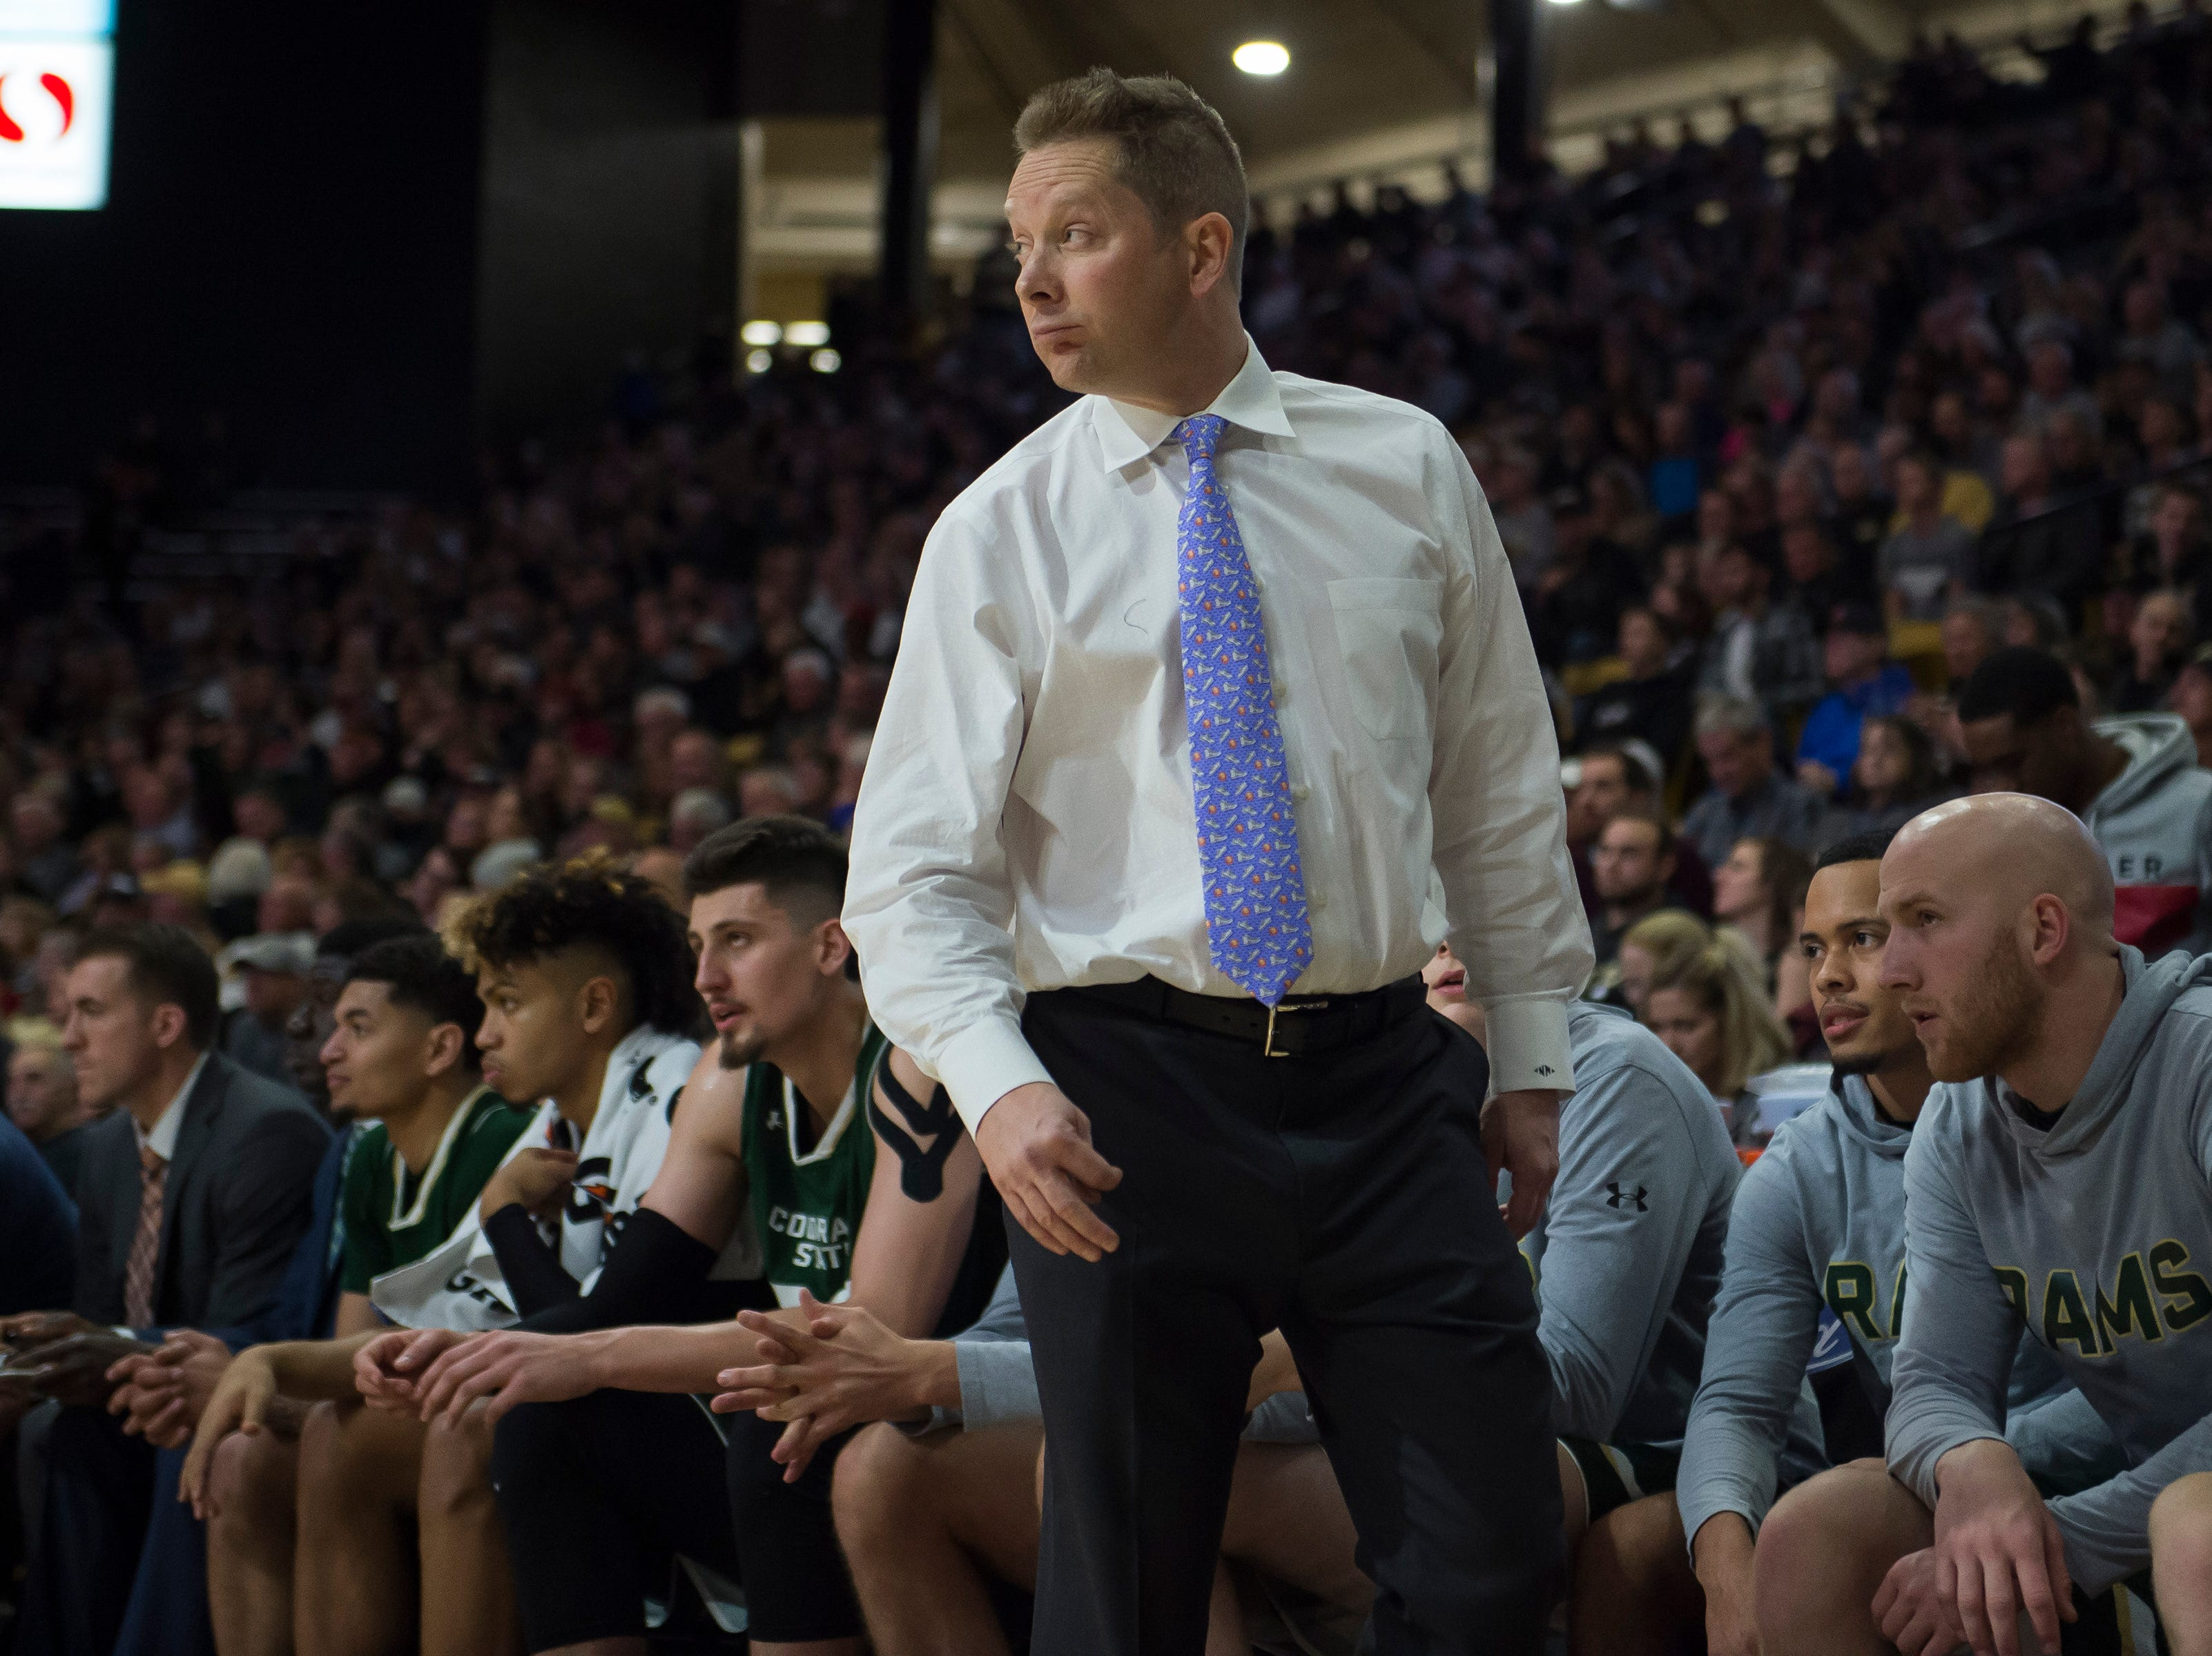 Colorado State University head coach Niko Medved looks on during a game against the University of Colorado on Saturday, Dec. 1, 2018, at the CU Event Center in Boulder, Colo.